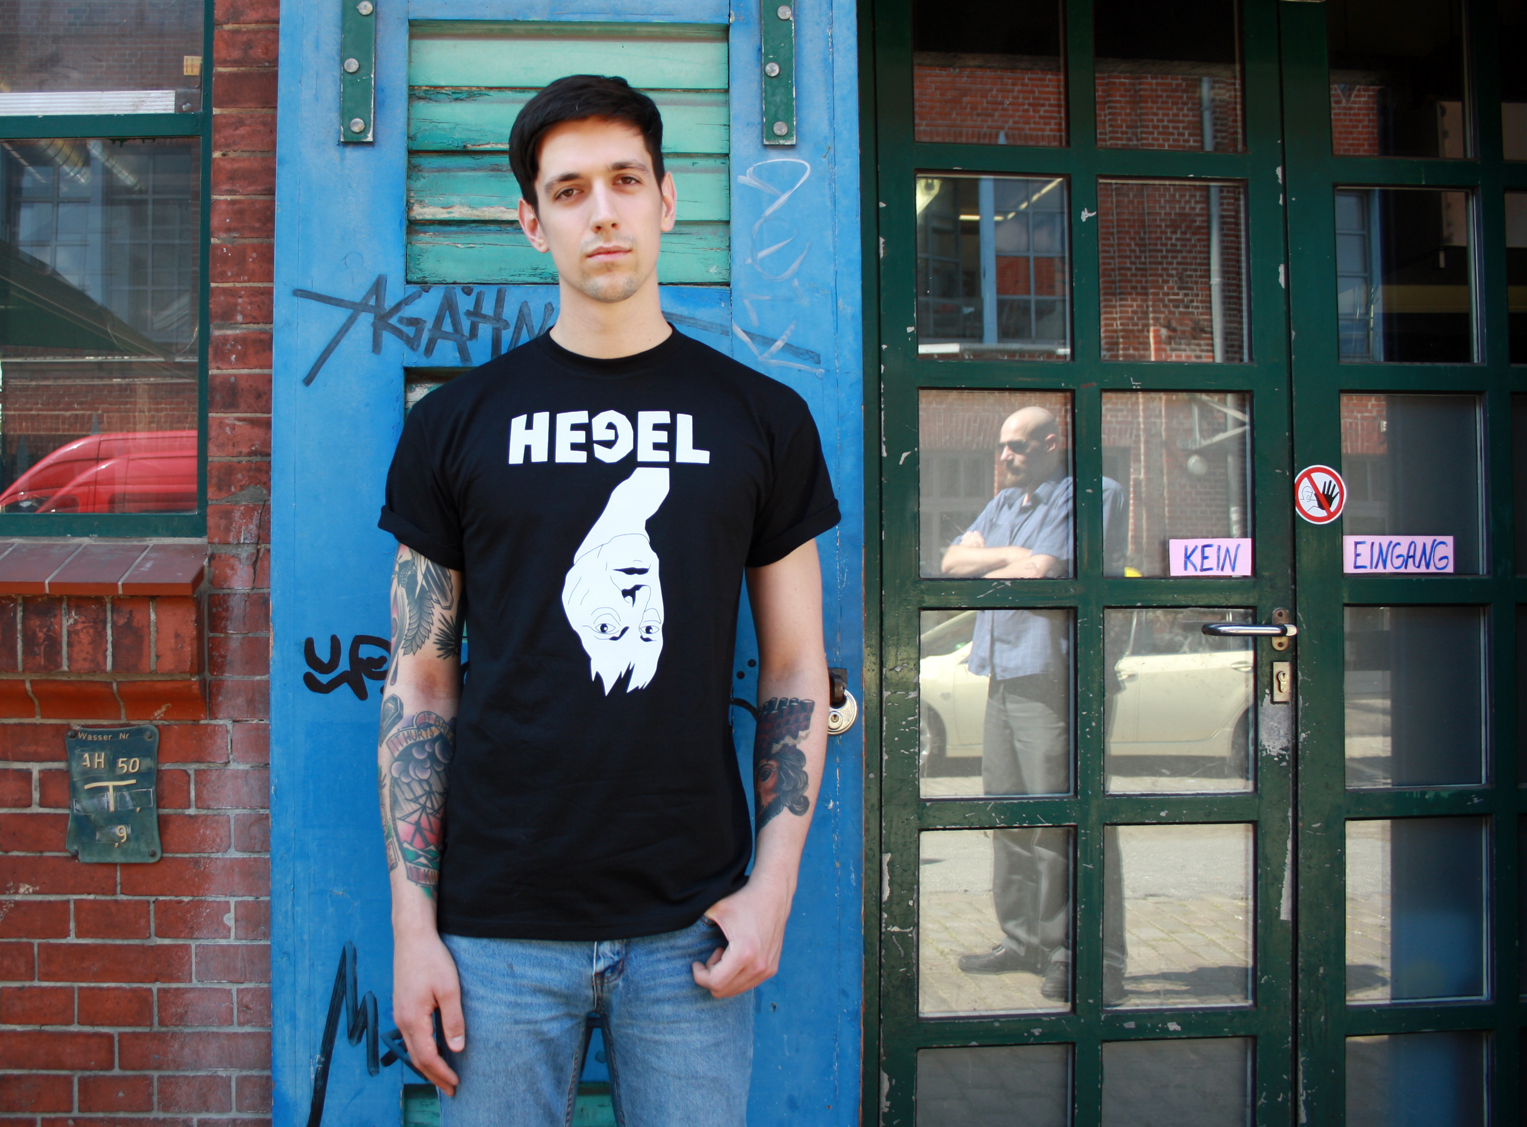 Hegel T-Shirt